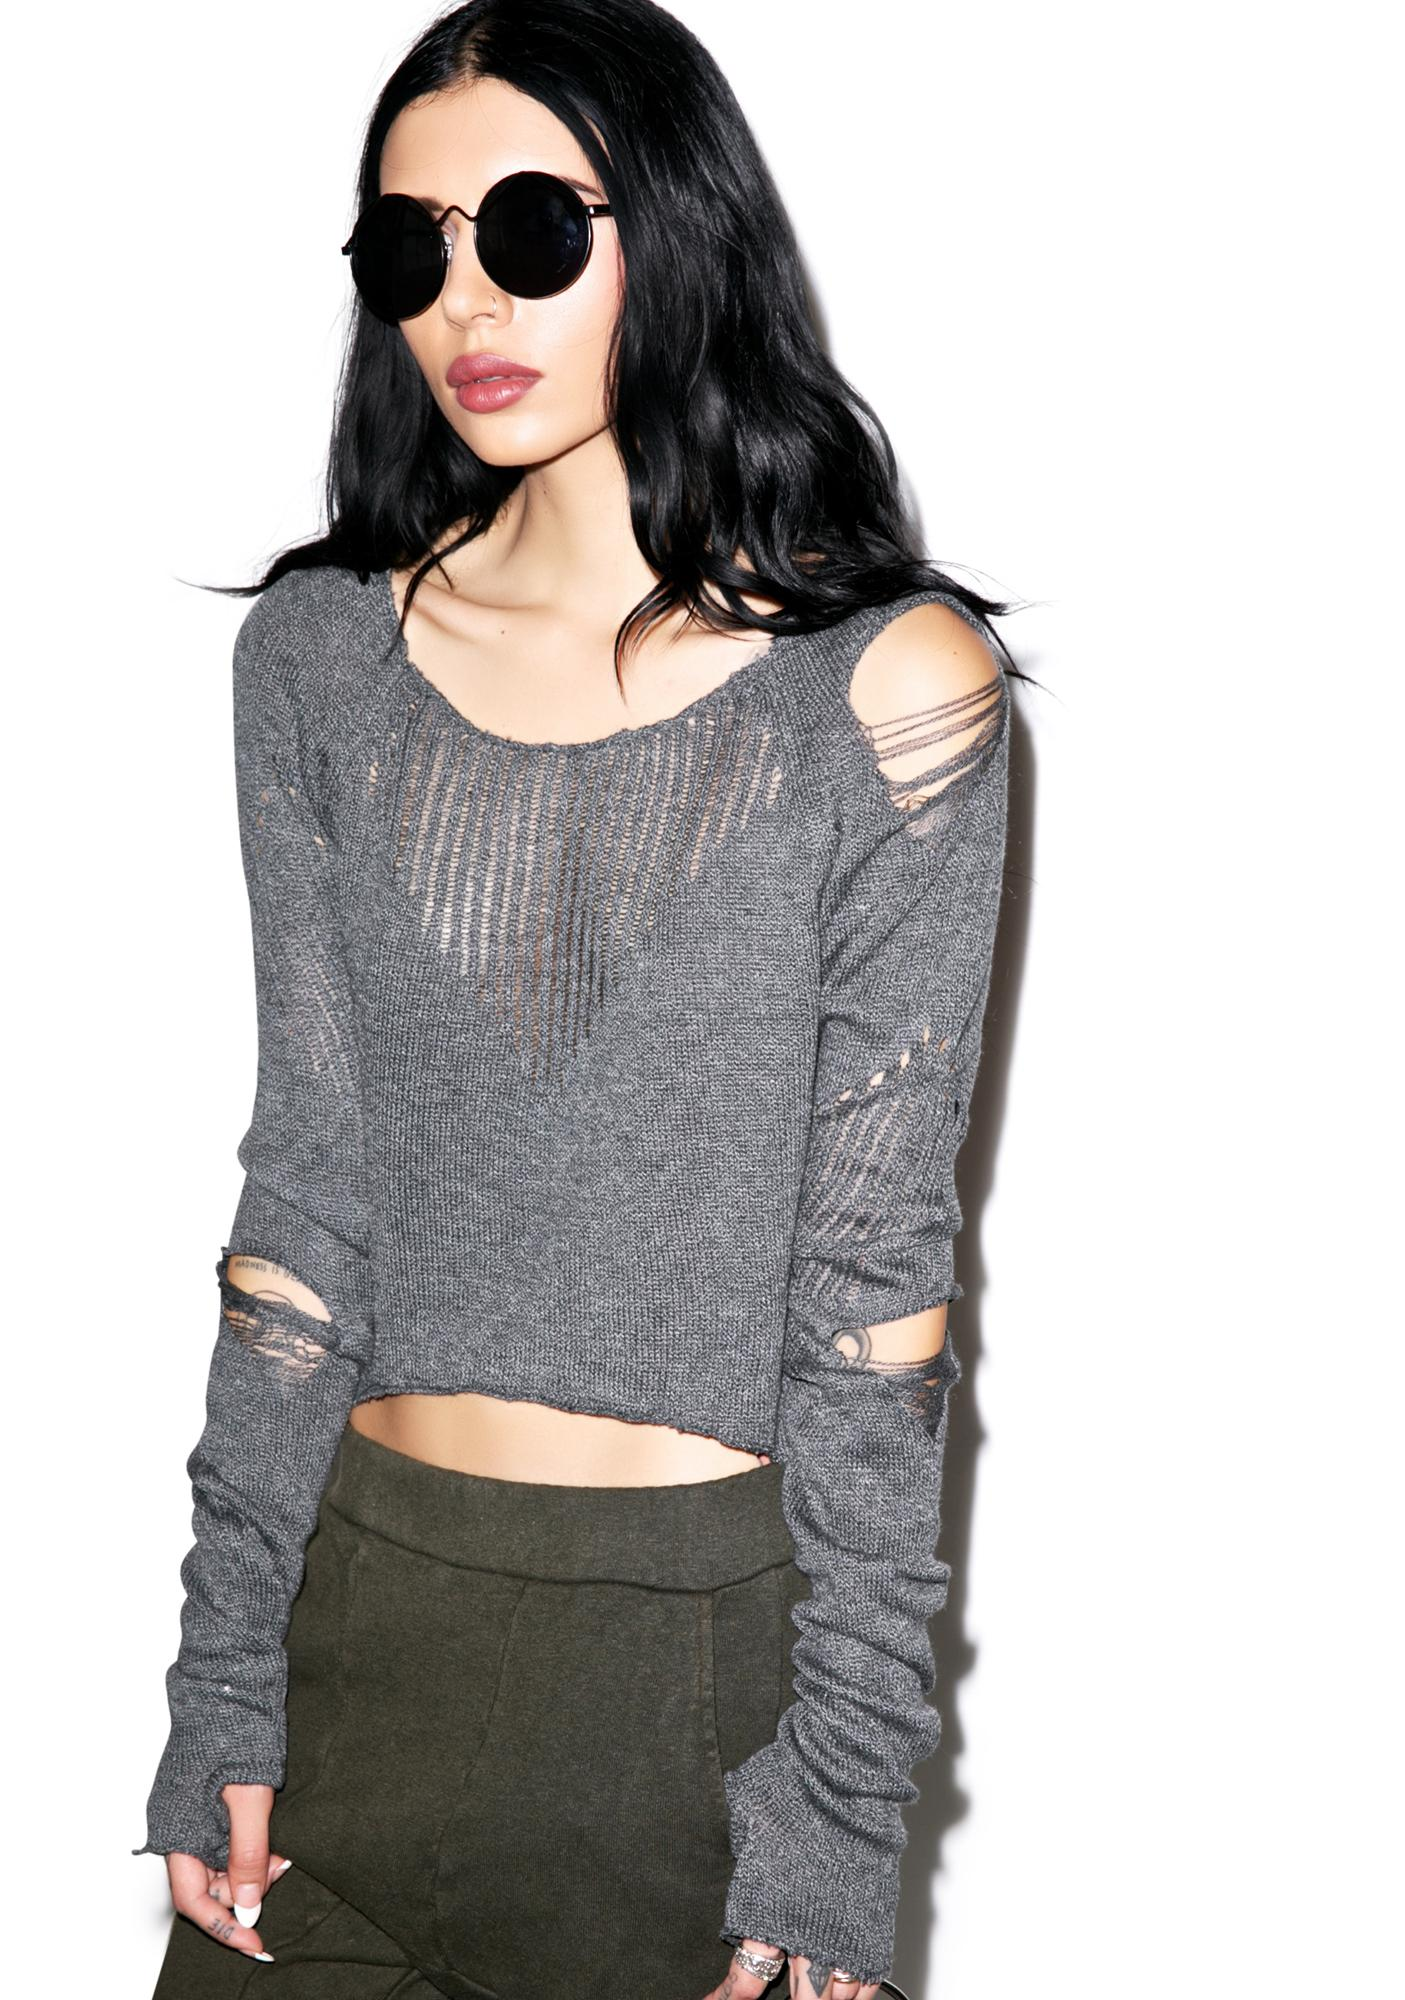 Lip Service Down n' Out Destroyed Sweater